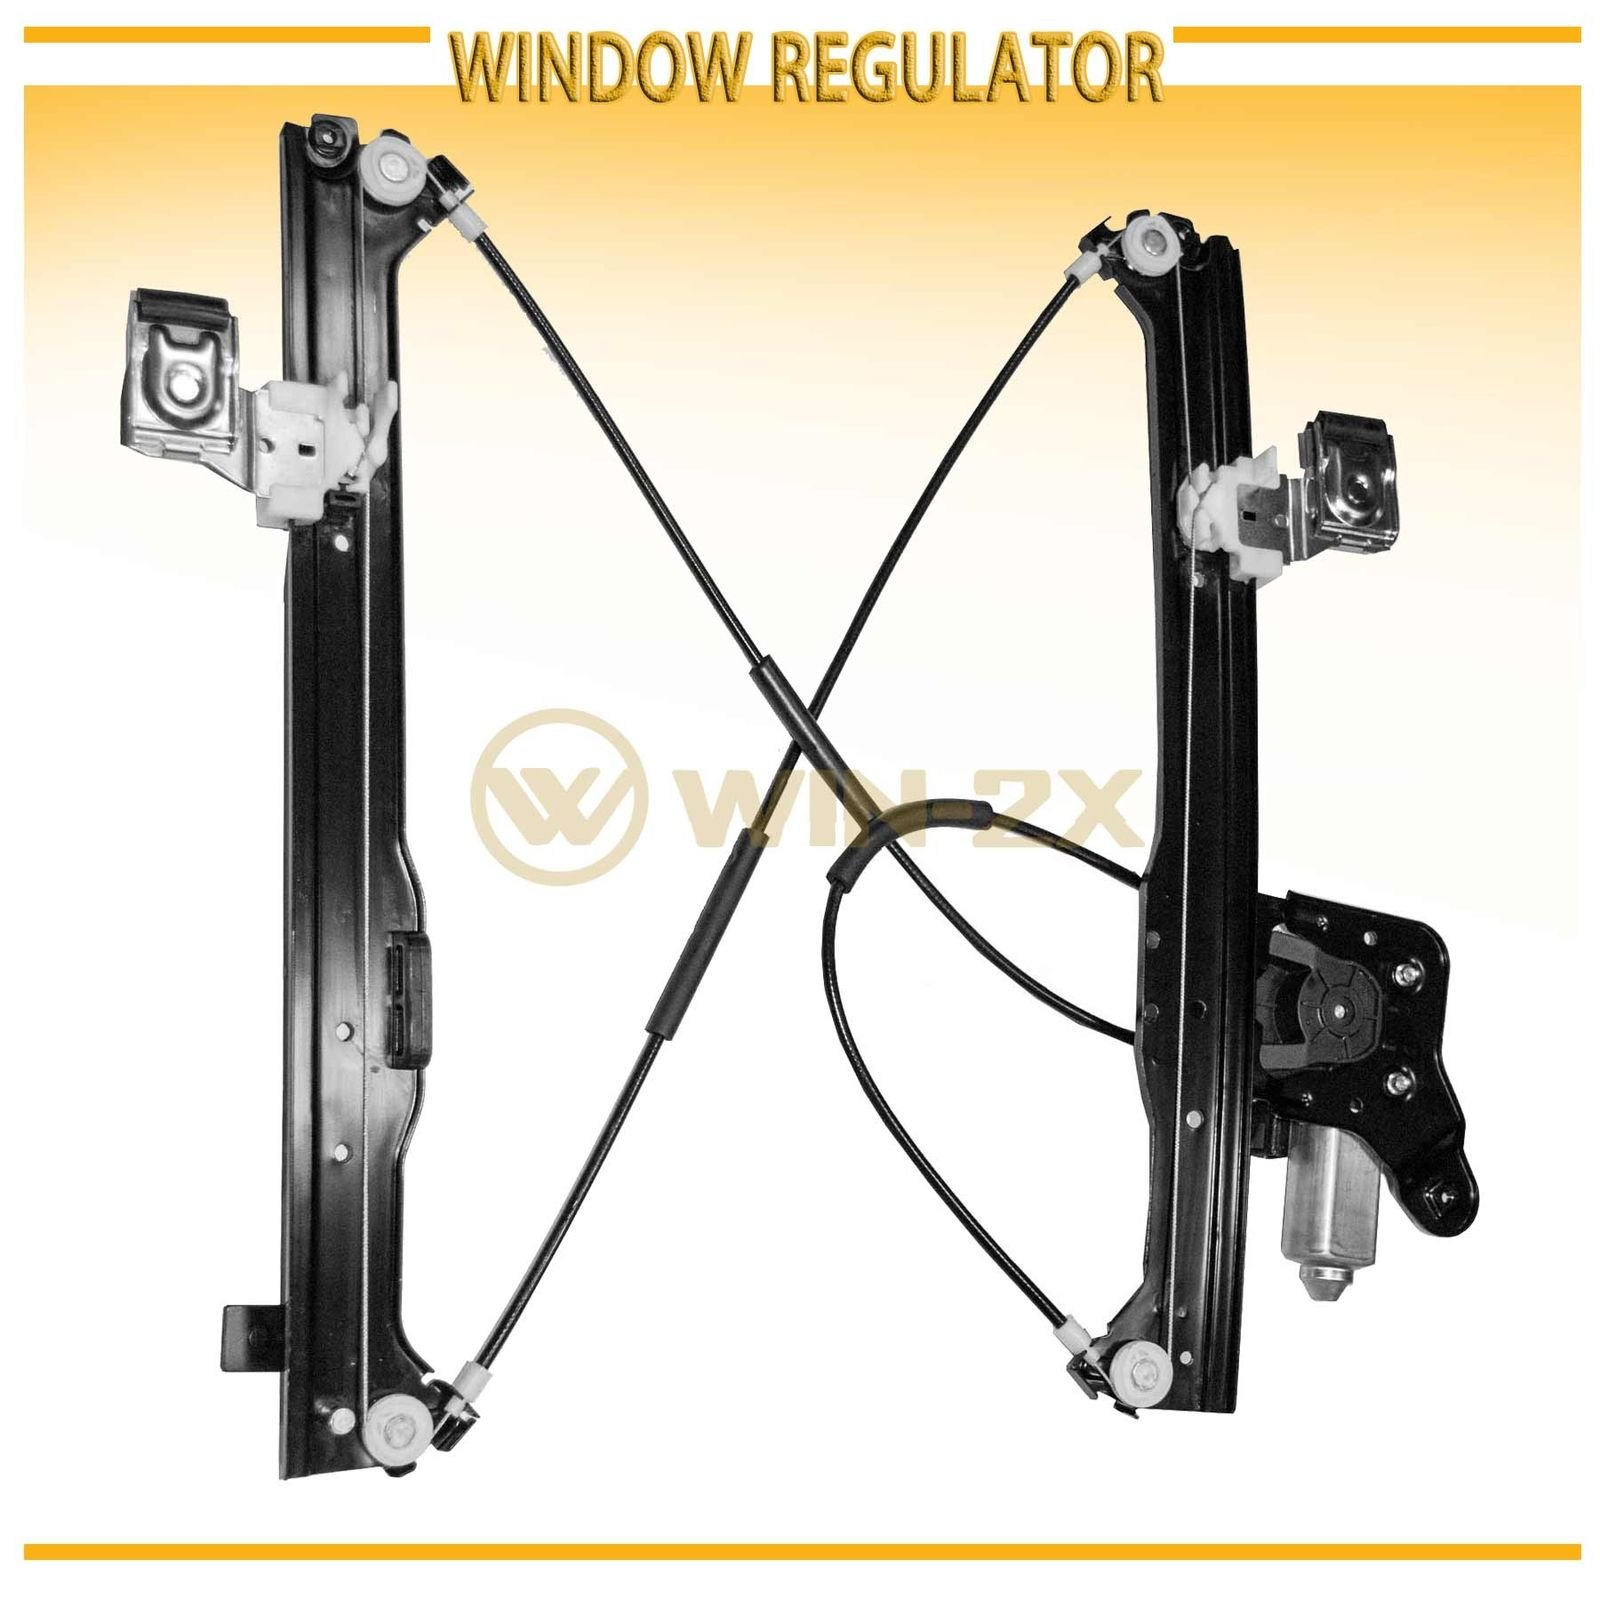 WIN-2X New 1pc Rear Passenger Right Side Power Window Regulator With Motor Assembly Fit Cadillac Escalade EXT/ESV Chevy Suburban Avalanche GMC Yukon XL Silverado/Sierra 1500 2500 3500 Classic Crew Cab by WIN-2X